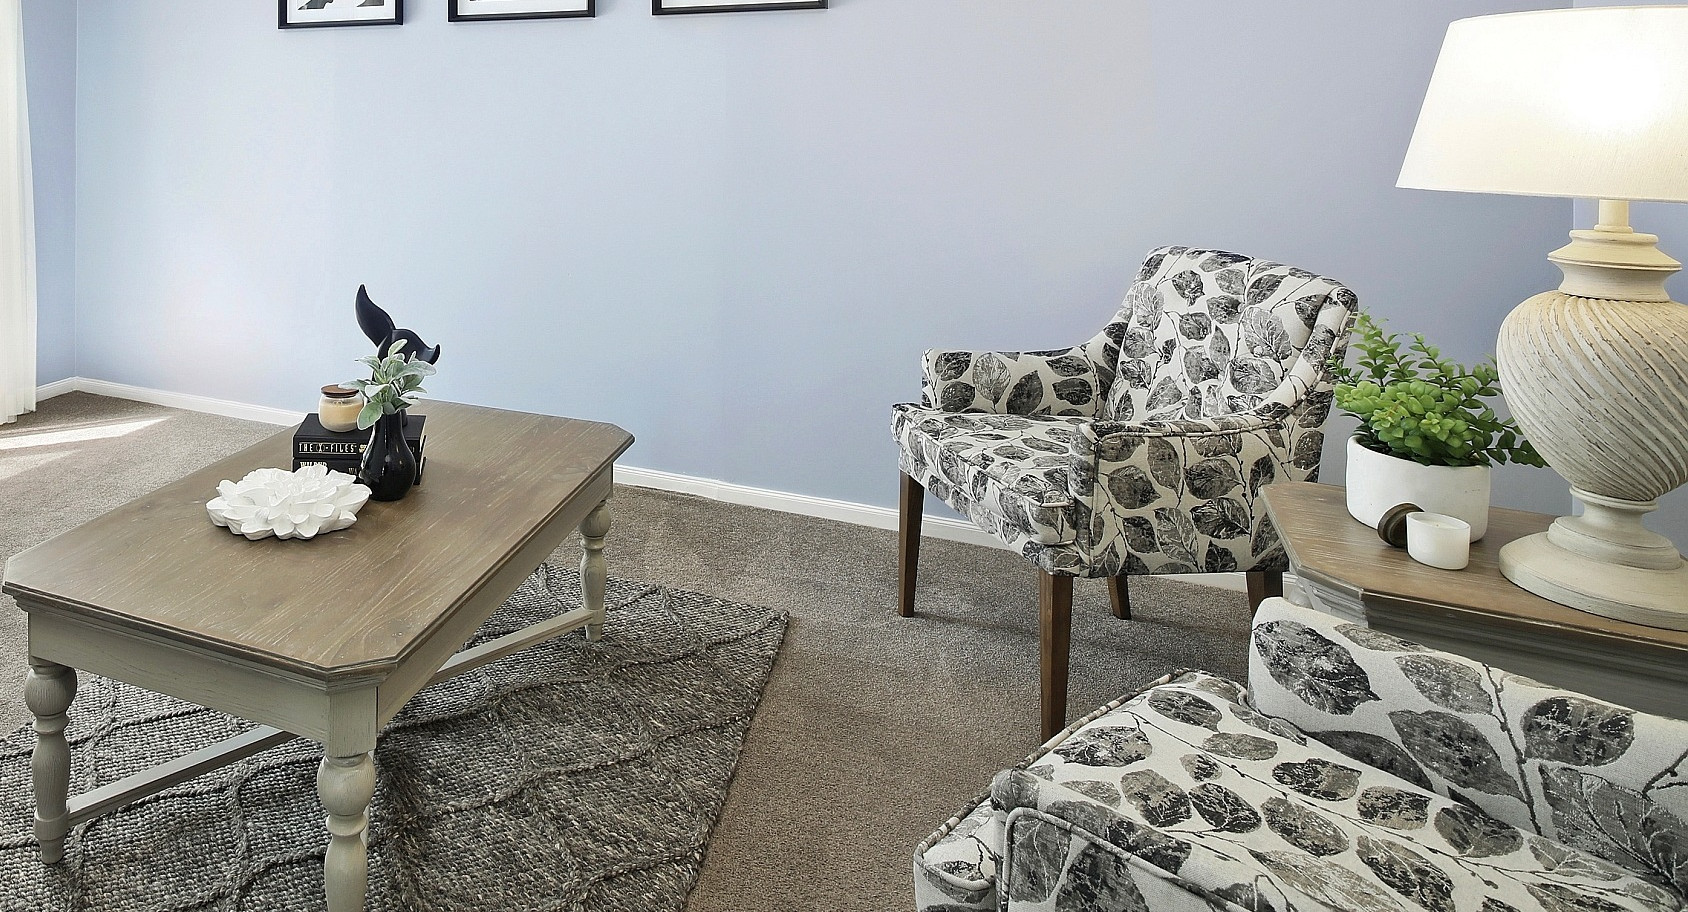 Sitting room with occasionals